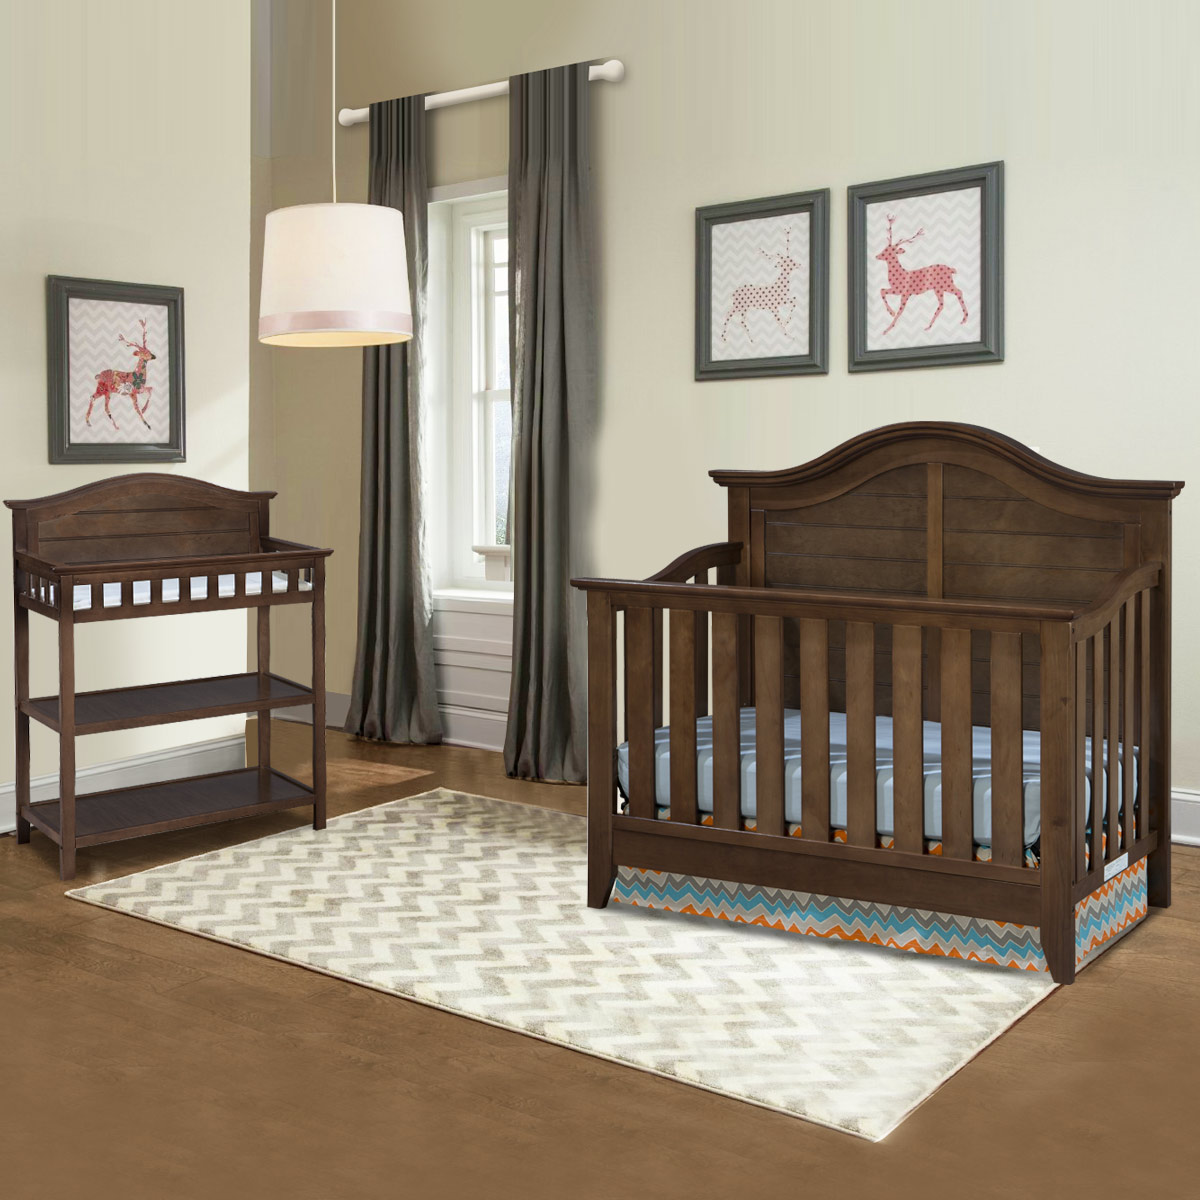 Thomasville 2 Piece Nursery Set   Southern Dunes Lifestyle Crib And  Dressing Table In Dove Brown FREE SHIPPING